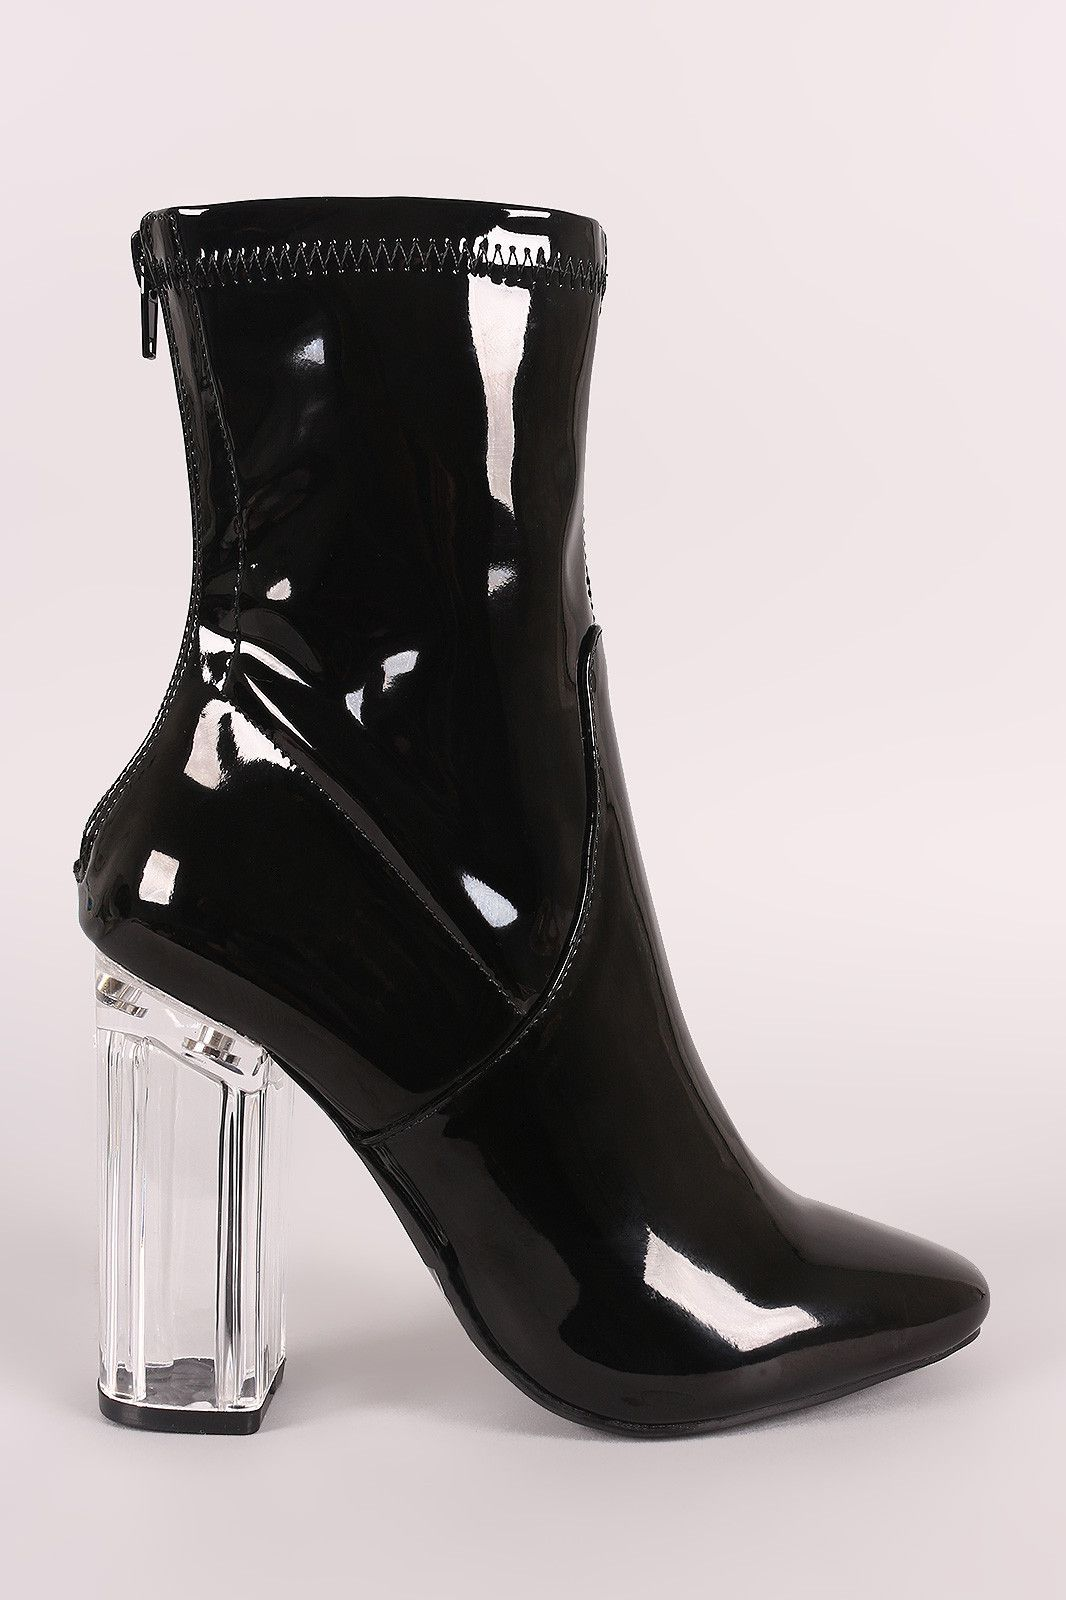 974a9b715b1 Liliana Lucite Chunky Heeled Ankle Boots   FSHN   Ankle boots, Ankle ...